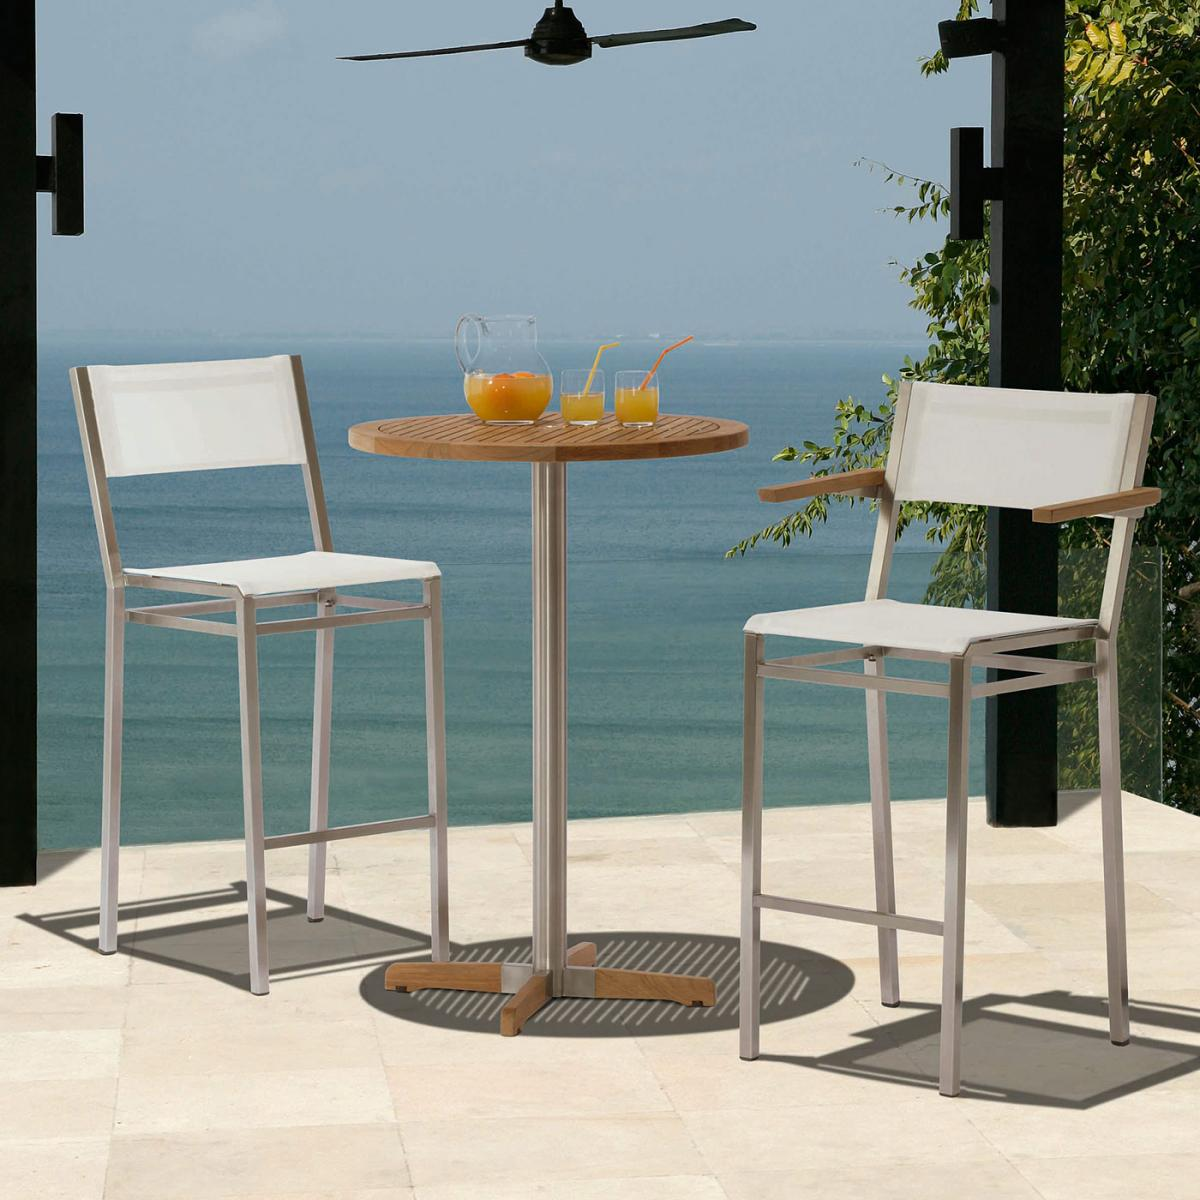 barlow tyrie equinox high dining side chair - clifton nurseries barlow tyrie equinox high dining side chairs for home orgarden